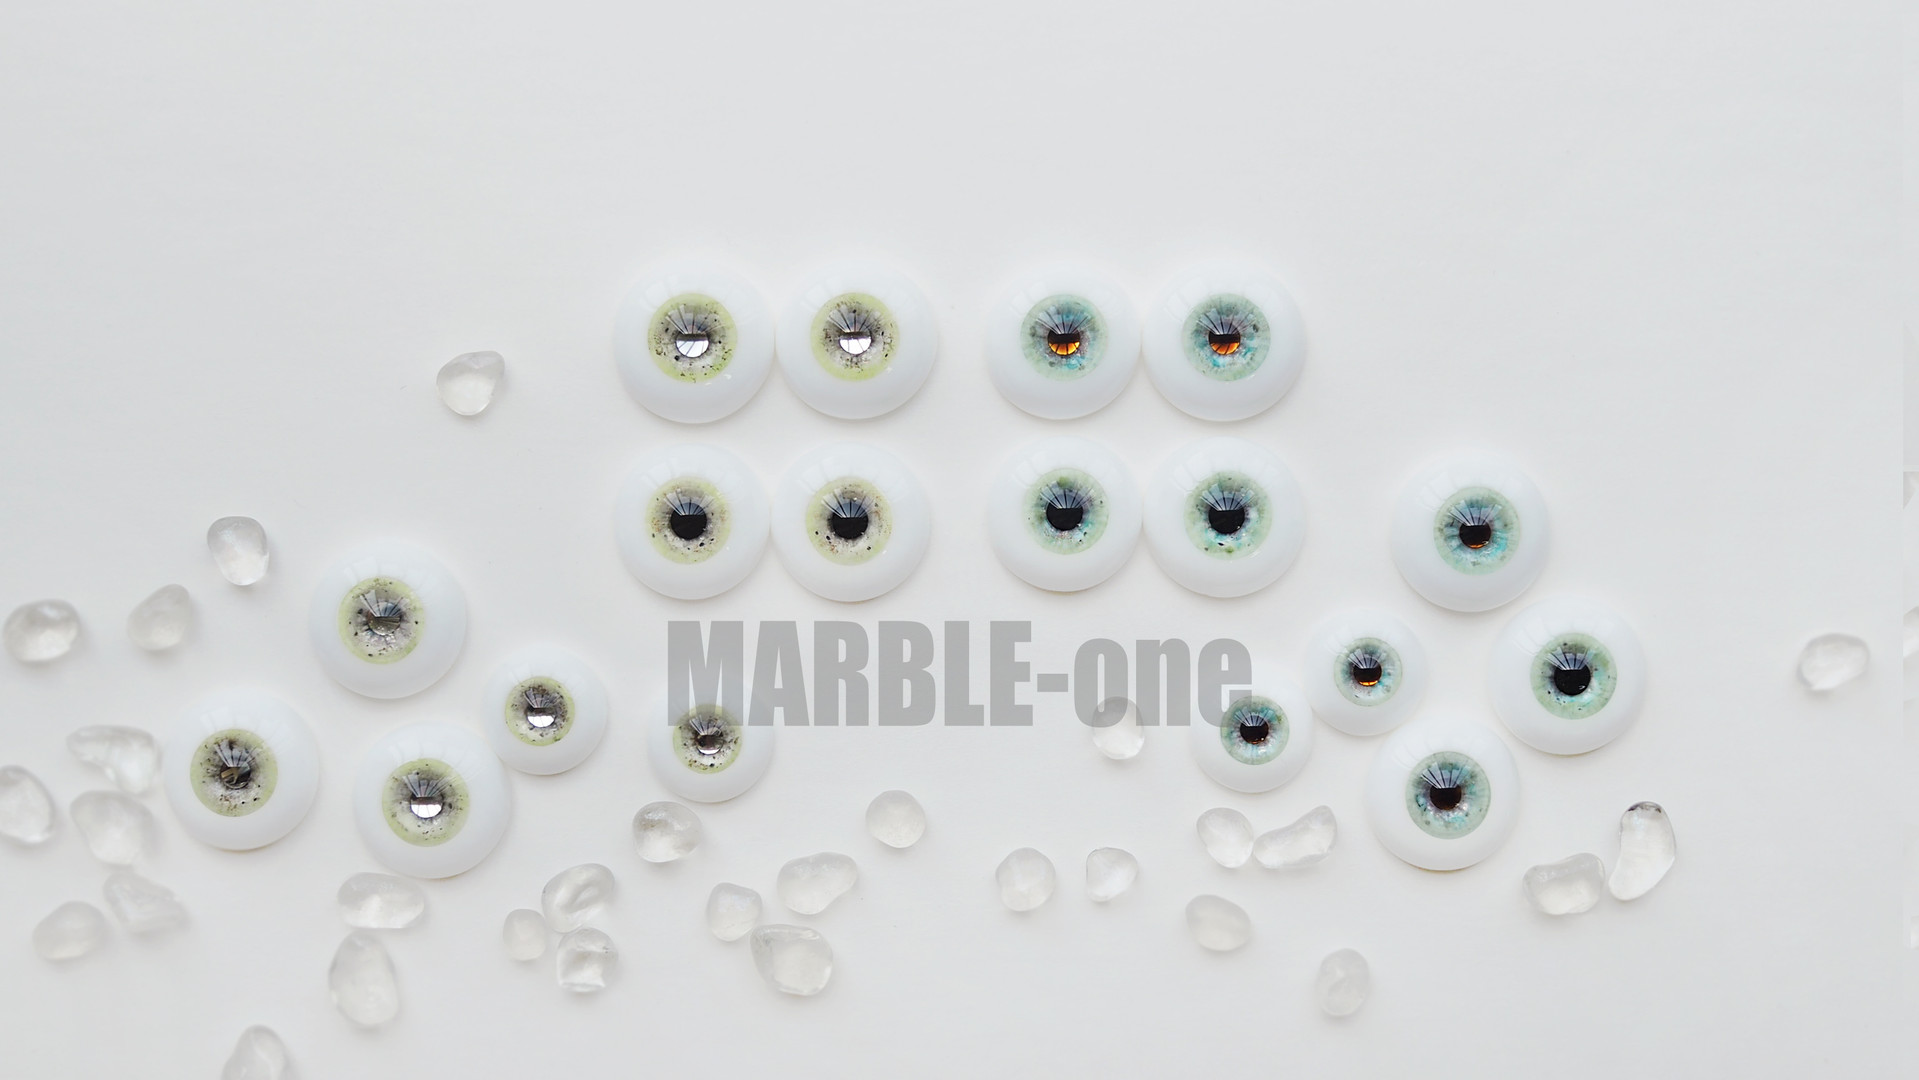 MARBLE-one_02 a.JPG